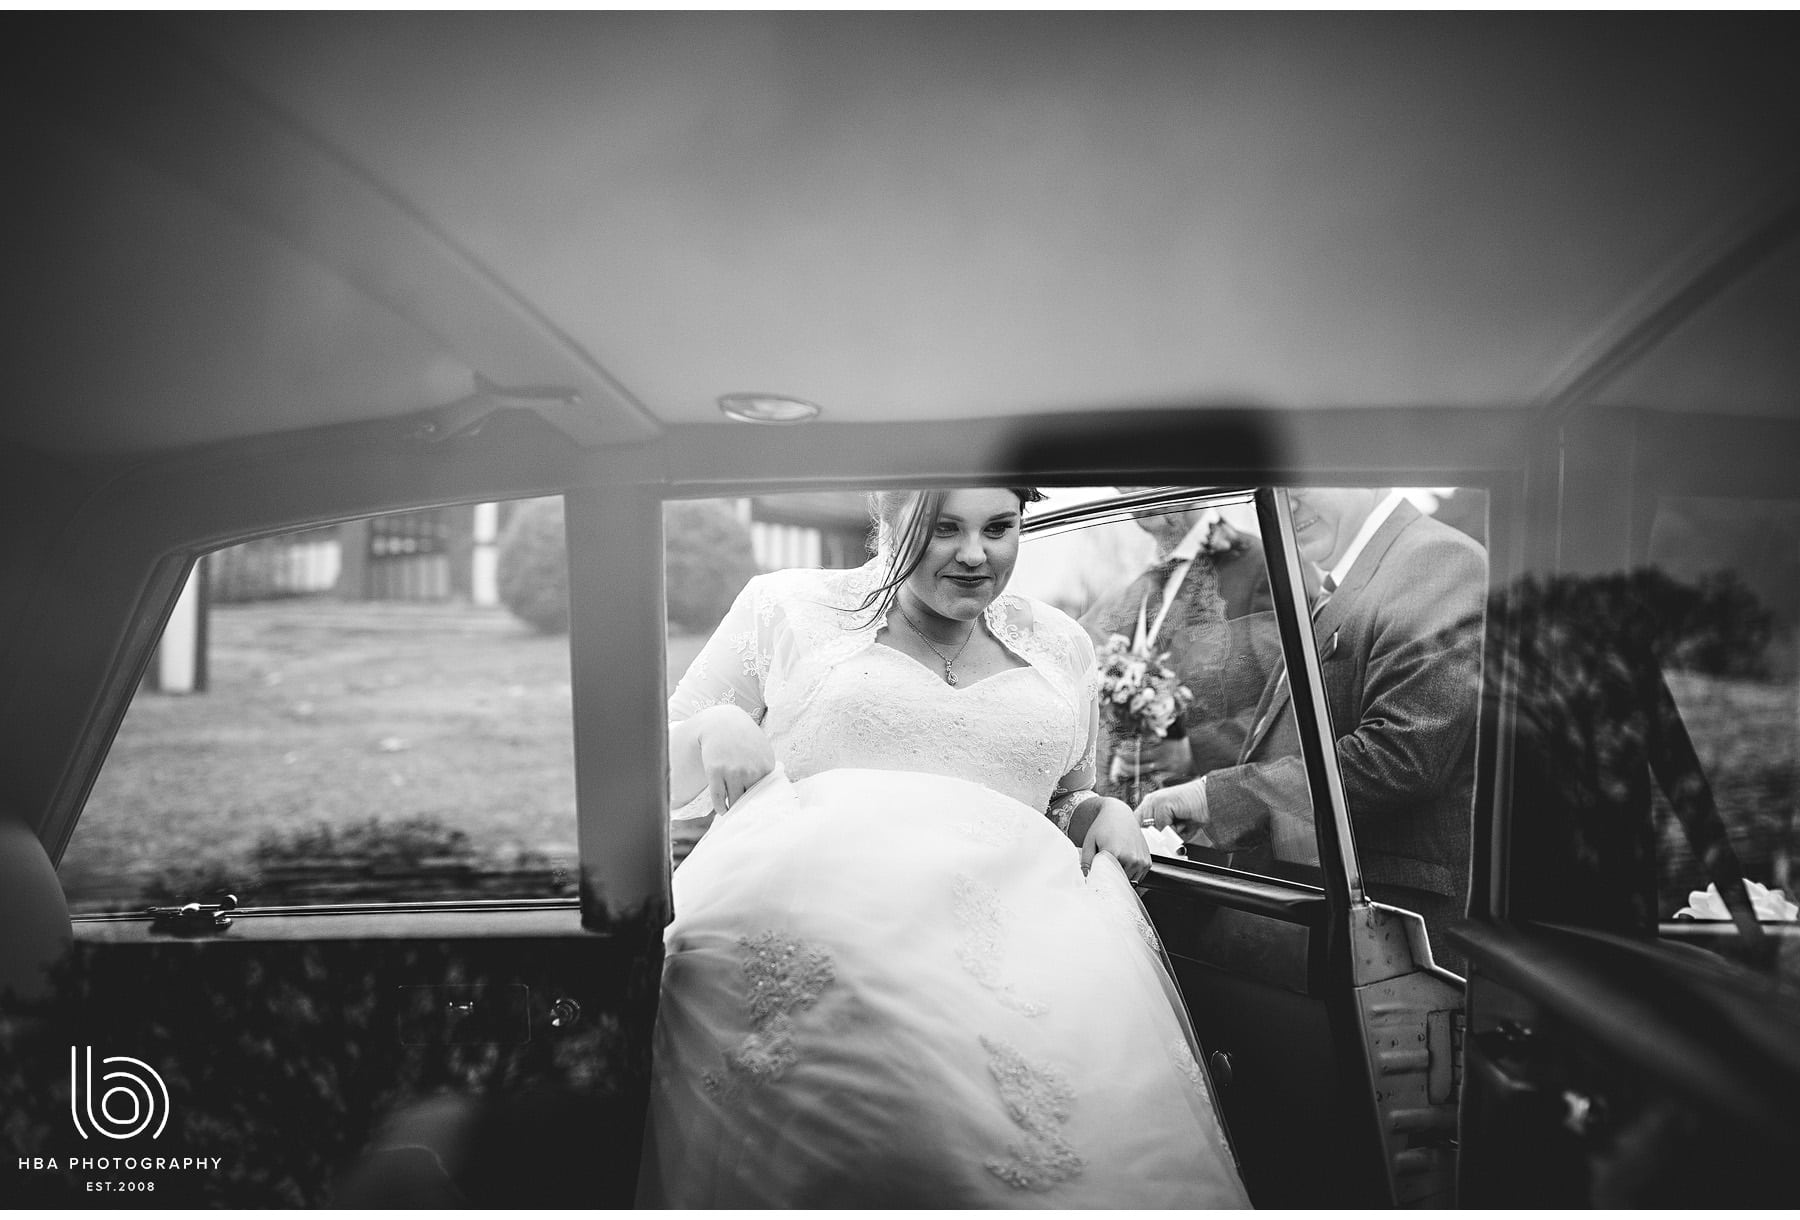 the bride getting into the car